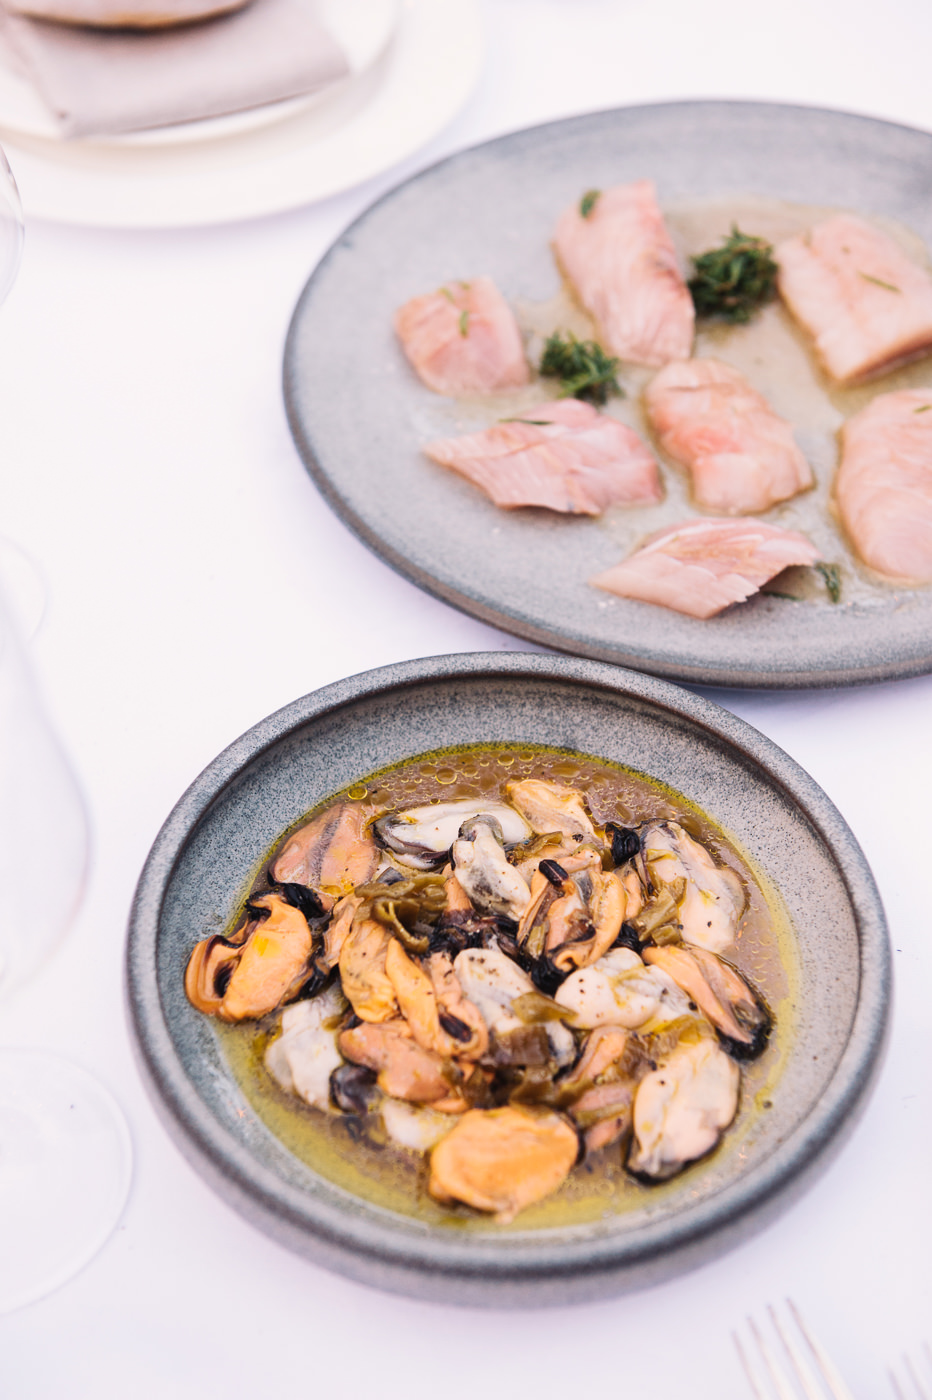 Tasmanian Salmon and mussels